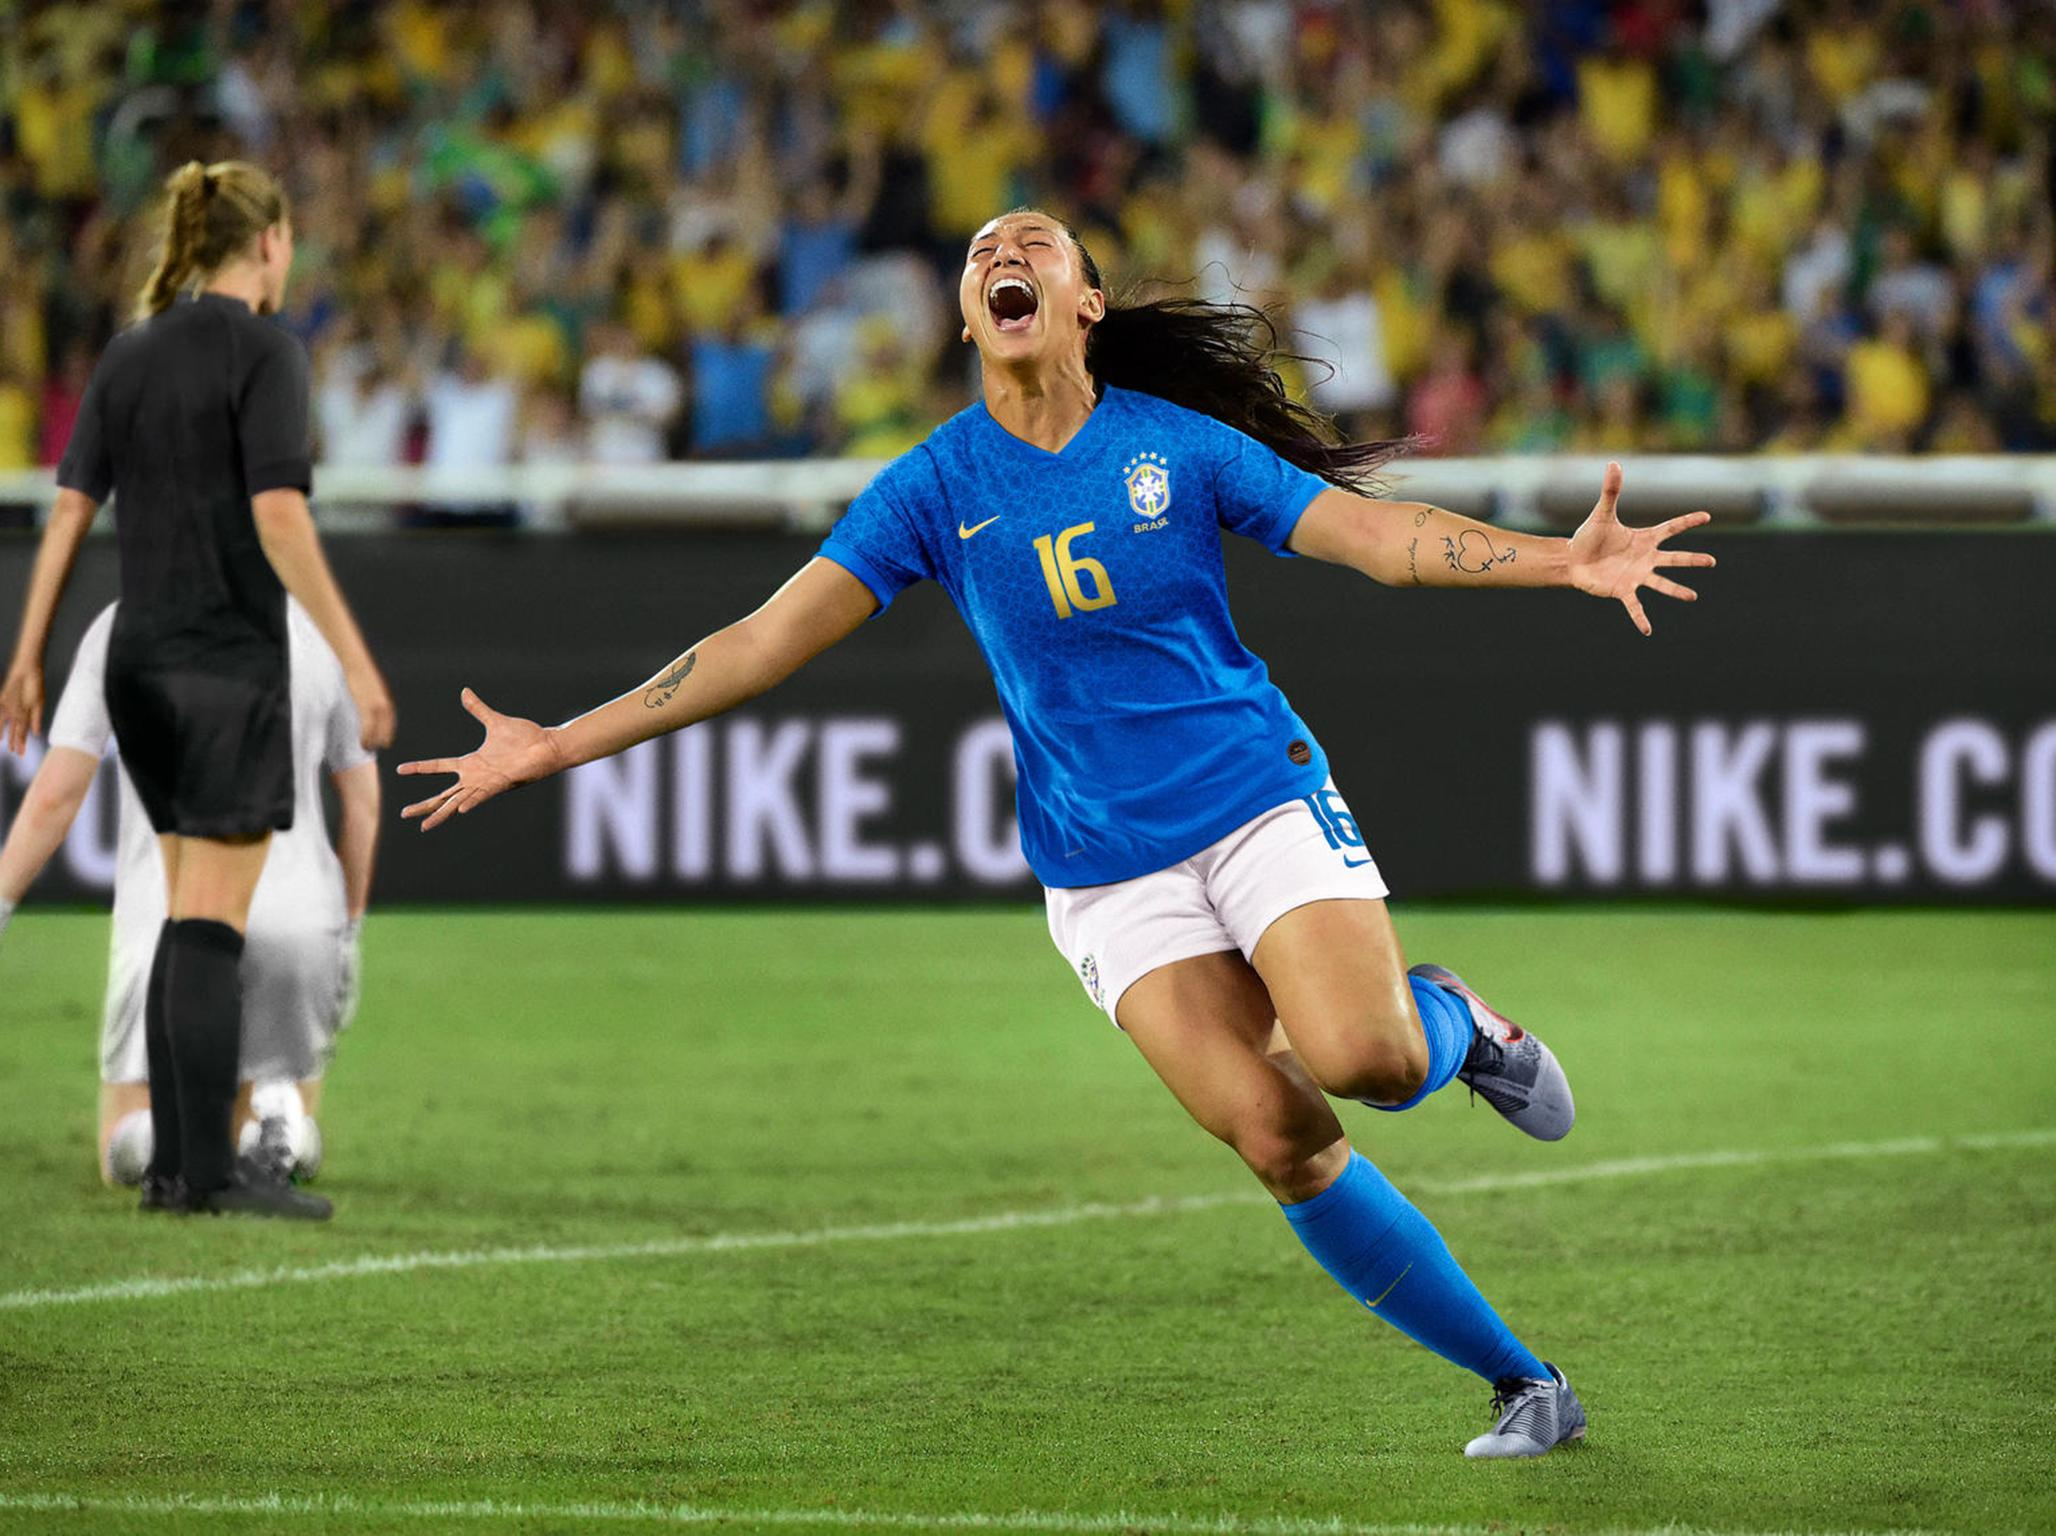 Nike releases empowering football advert ahead of Fifa Women's World Cup